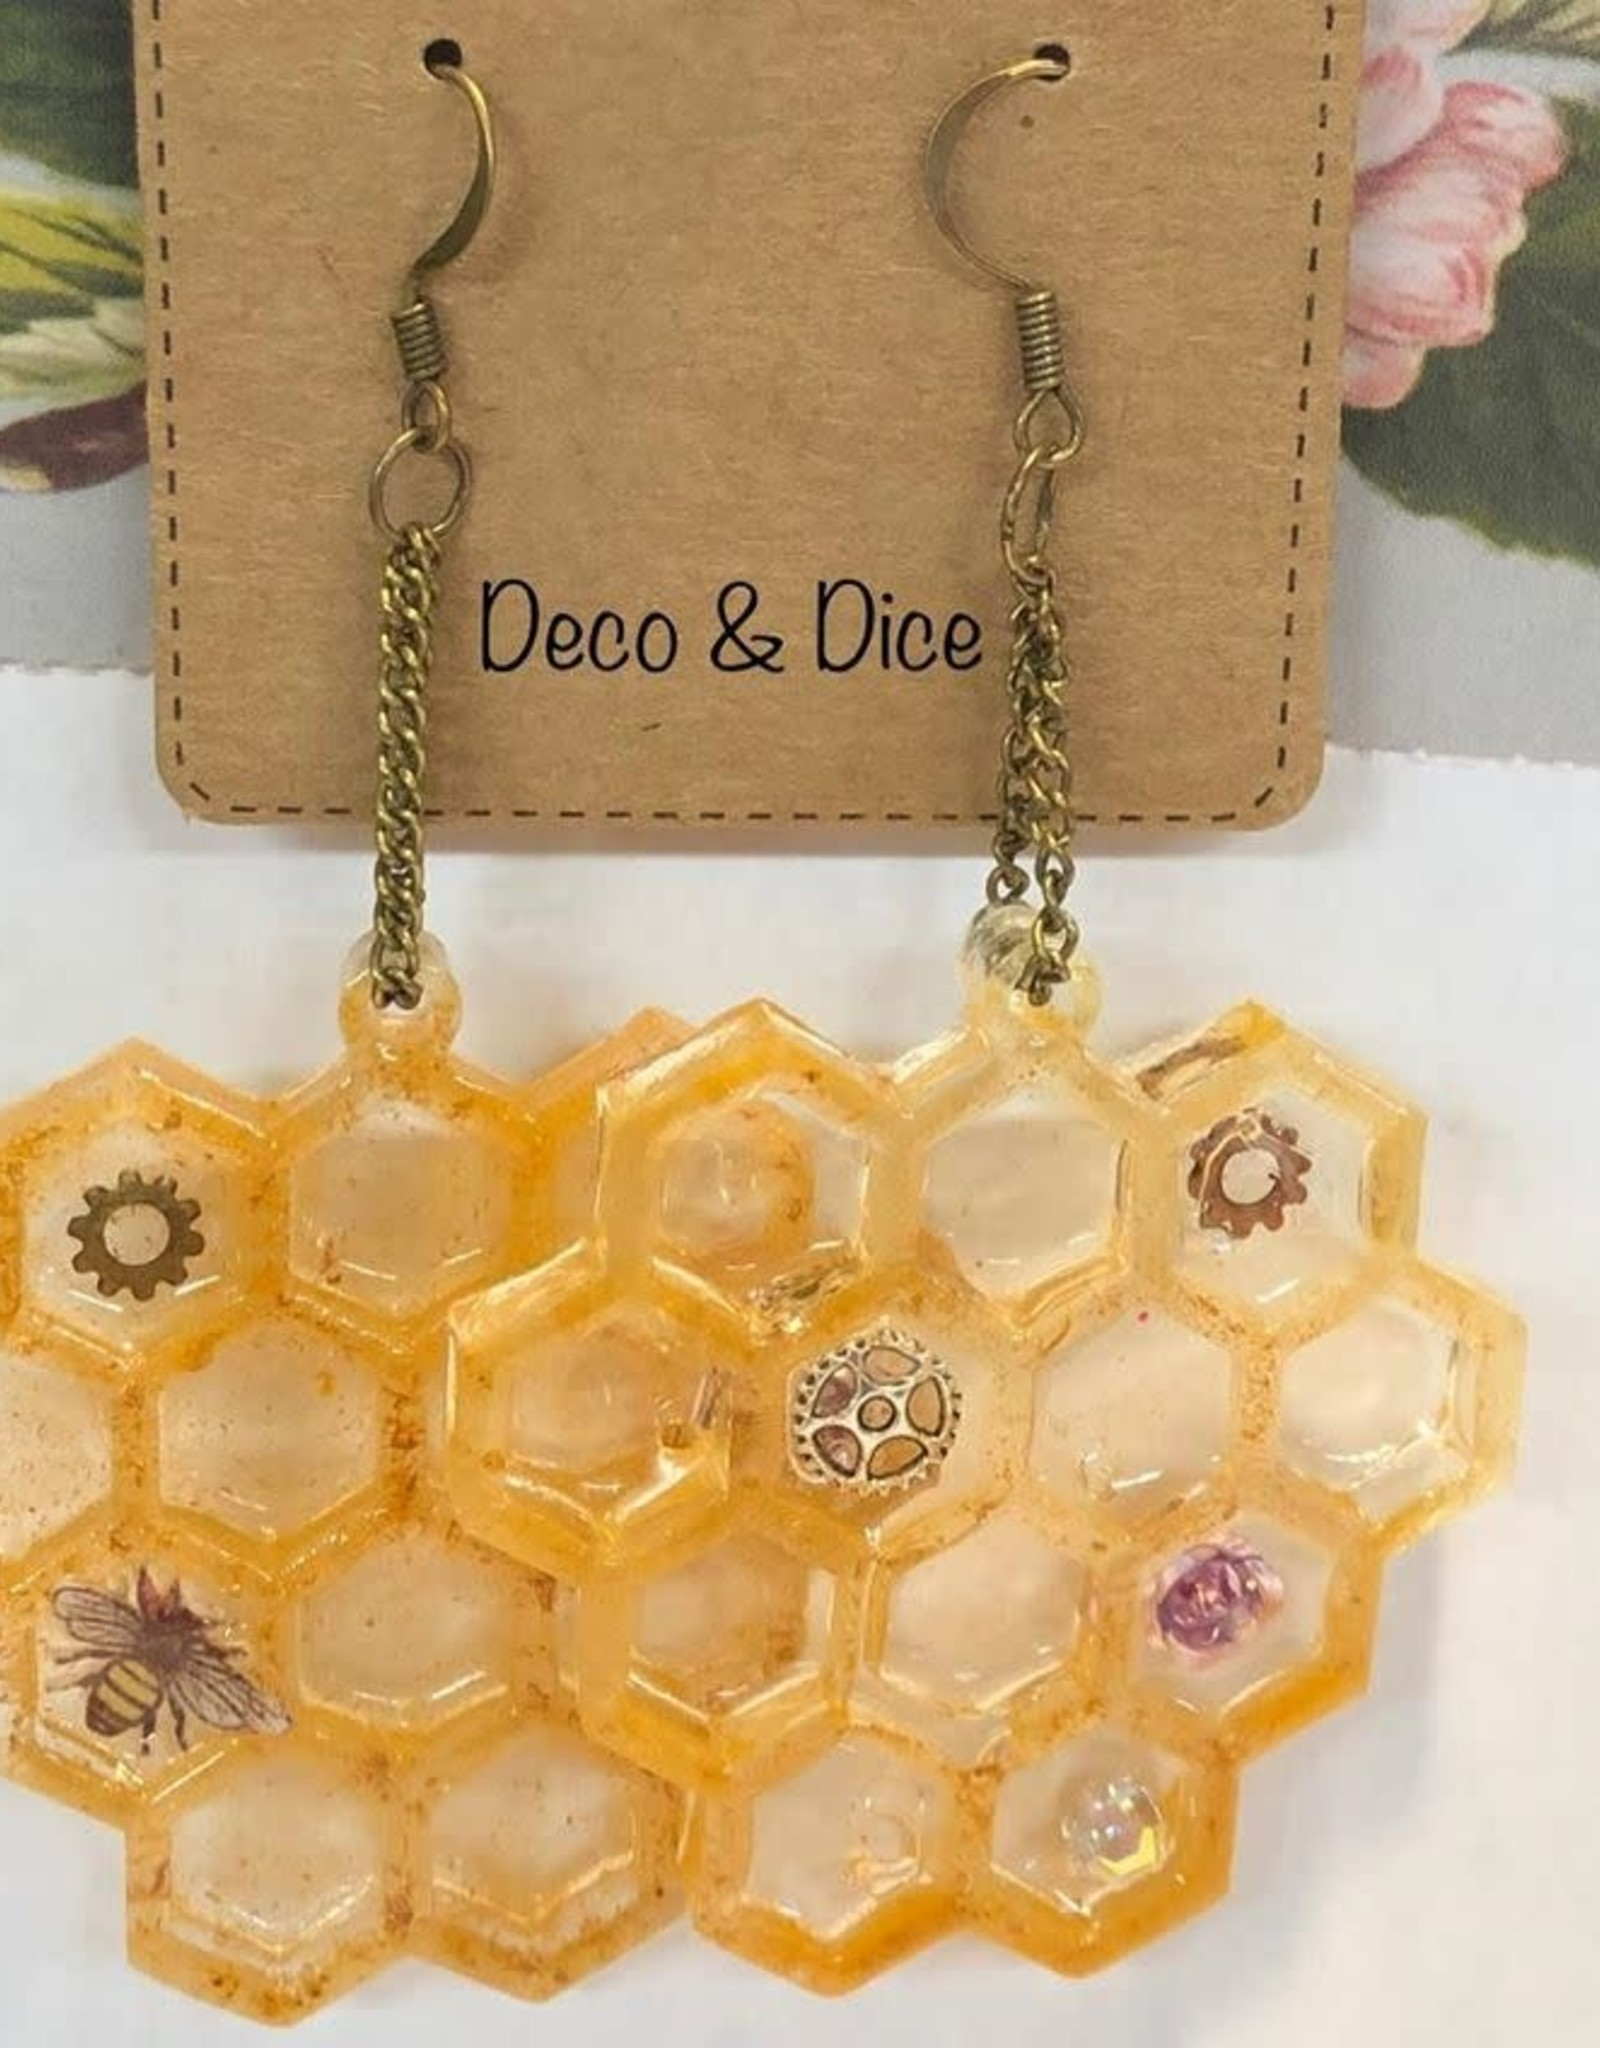 Deco and Dice Honeycomb Earrings